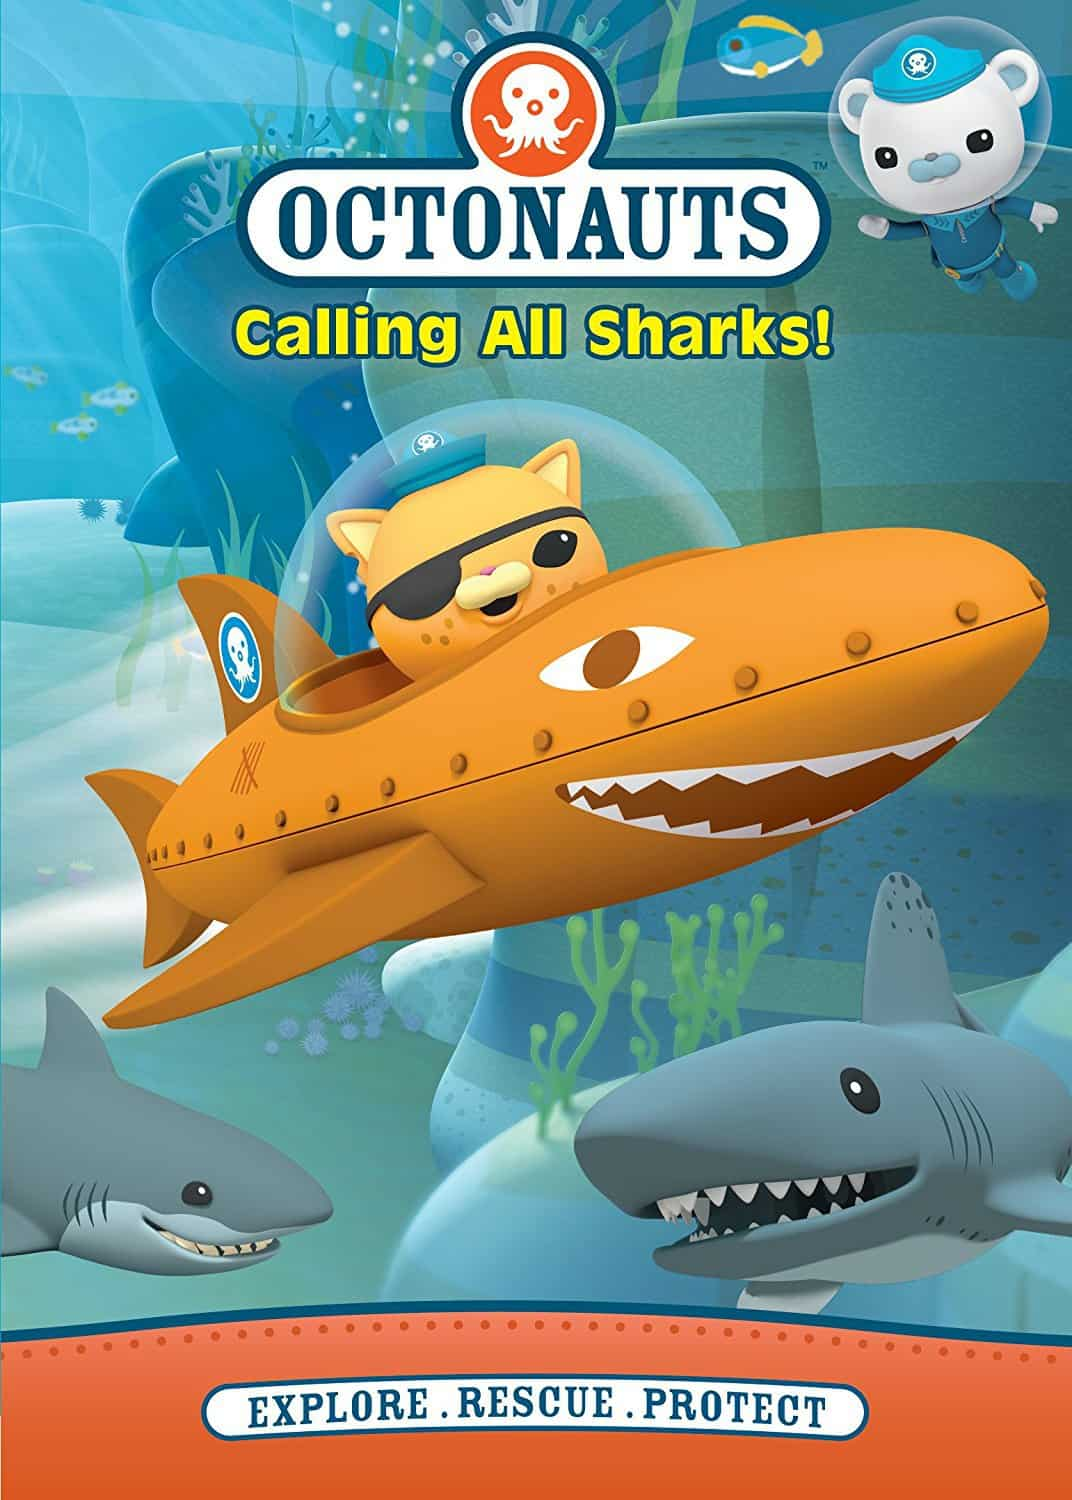 The Octonauts: Calling All Sharks! DVD Review & Giveaway